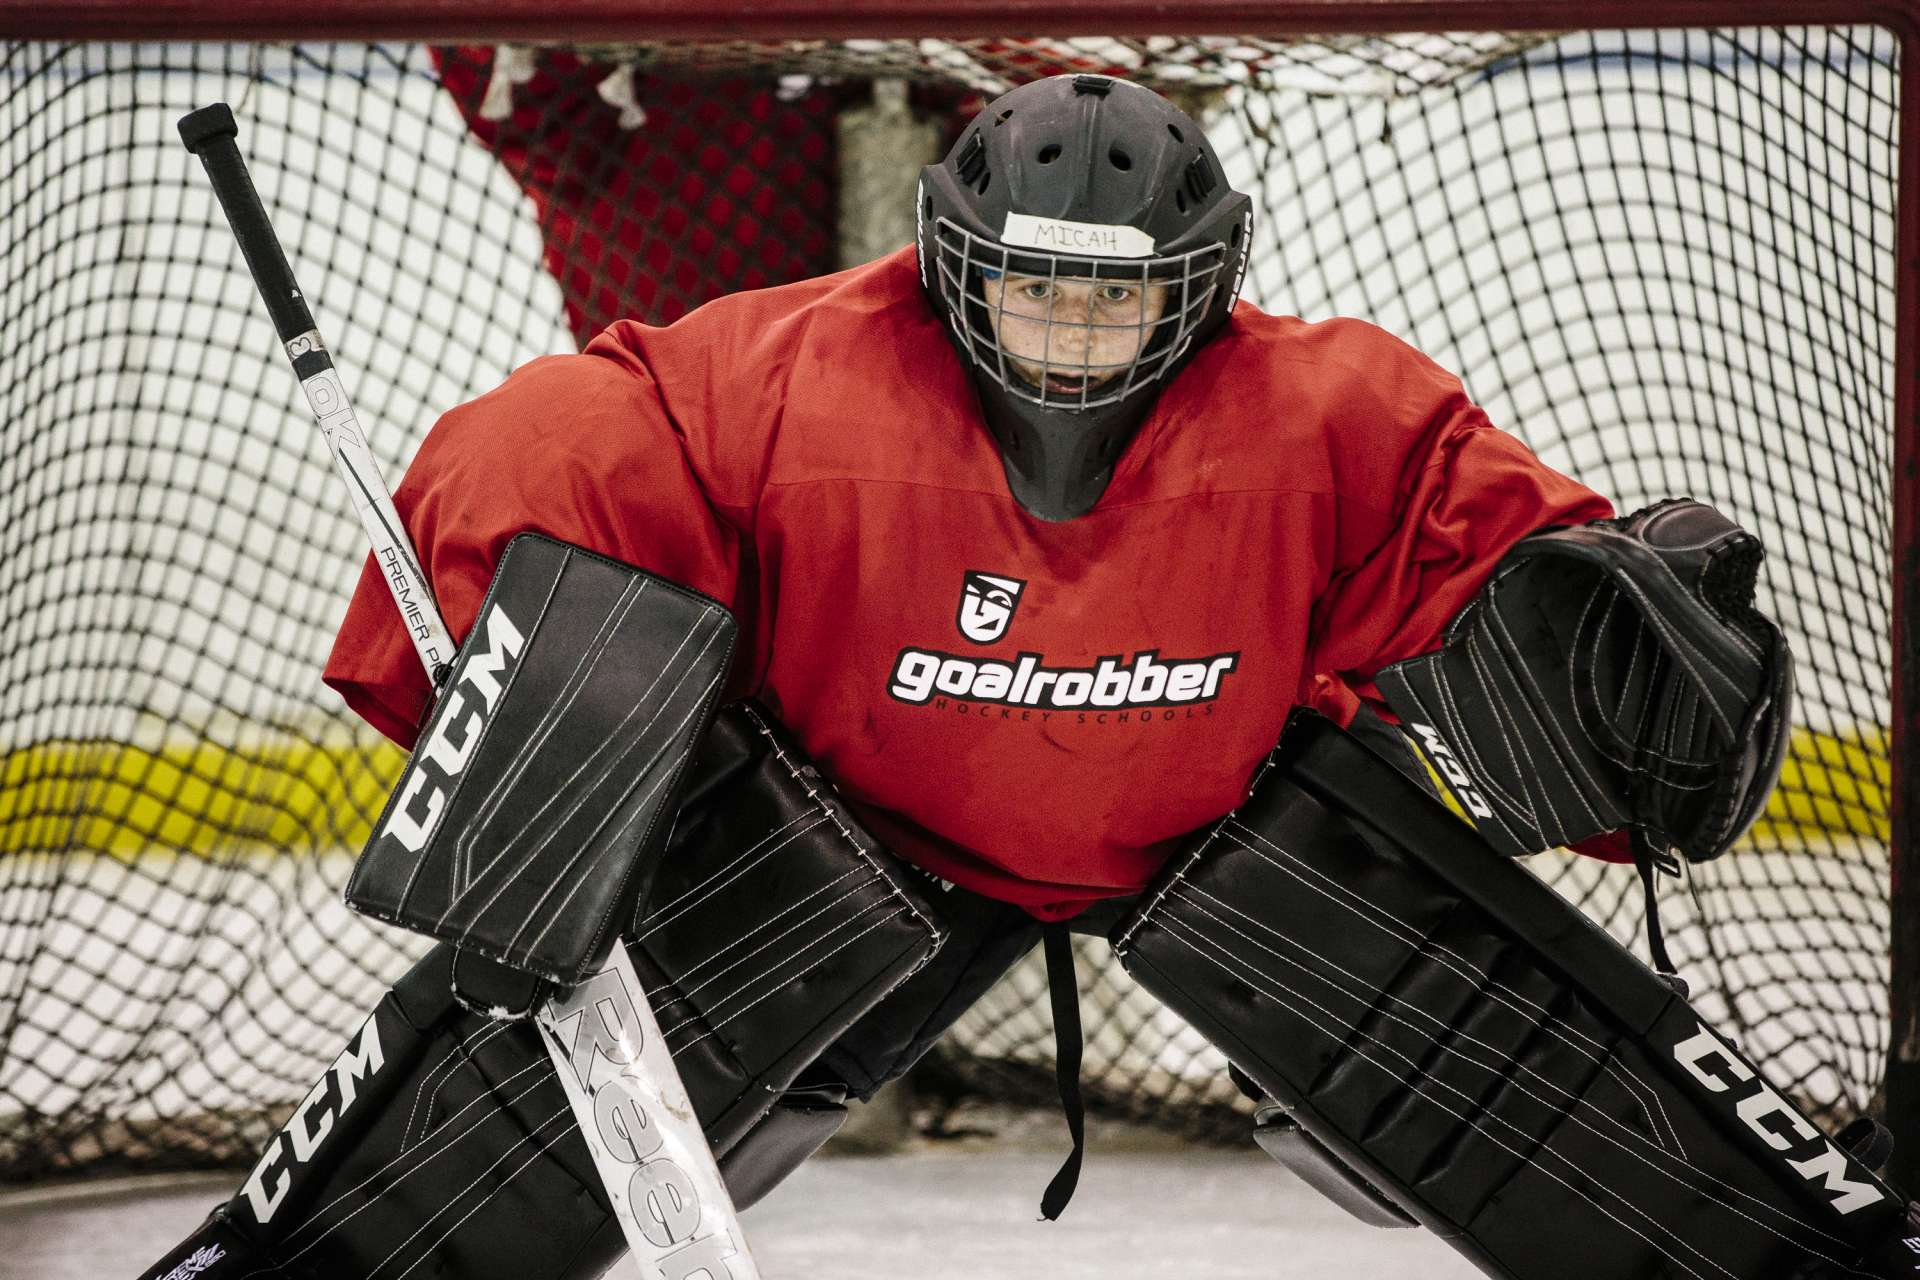 Intermediate Goalie Training Program Goalrobber Hockey Schools